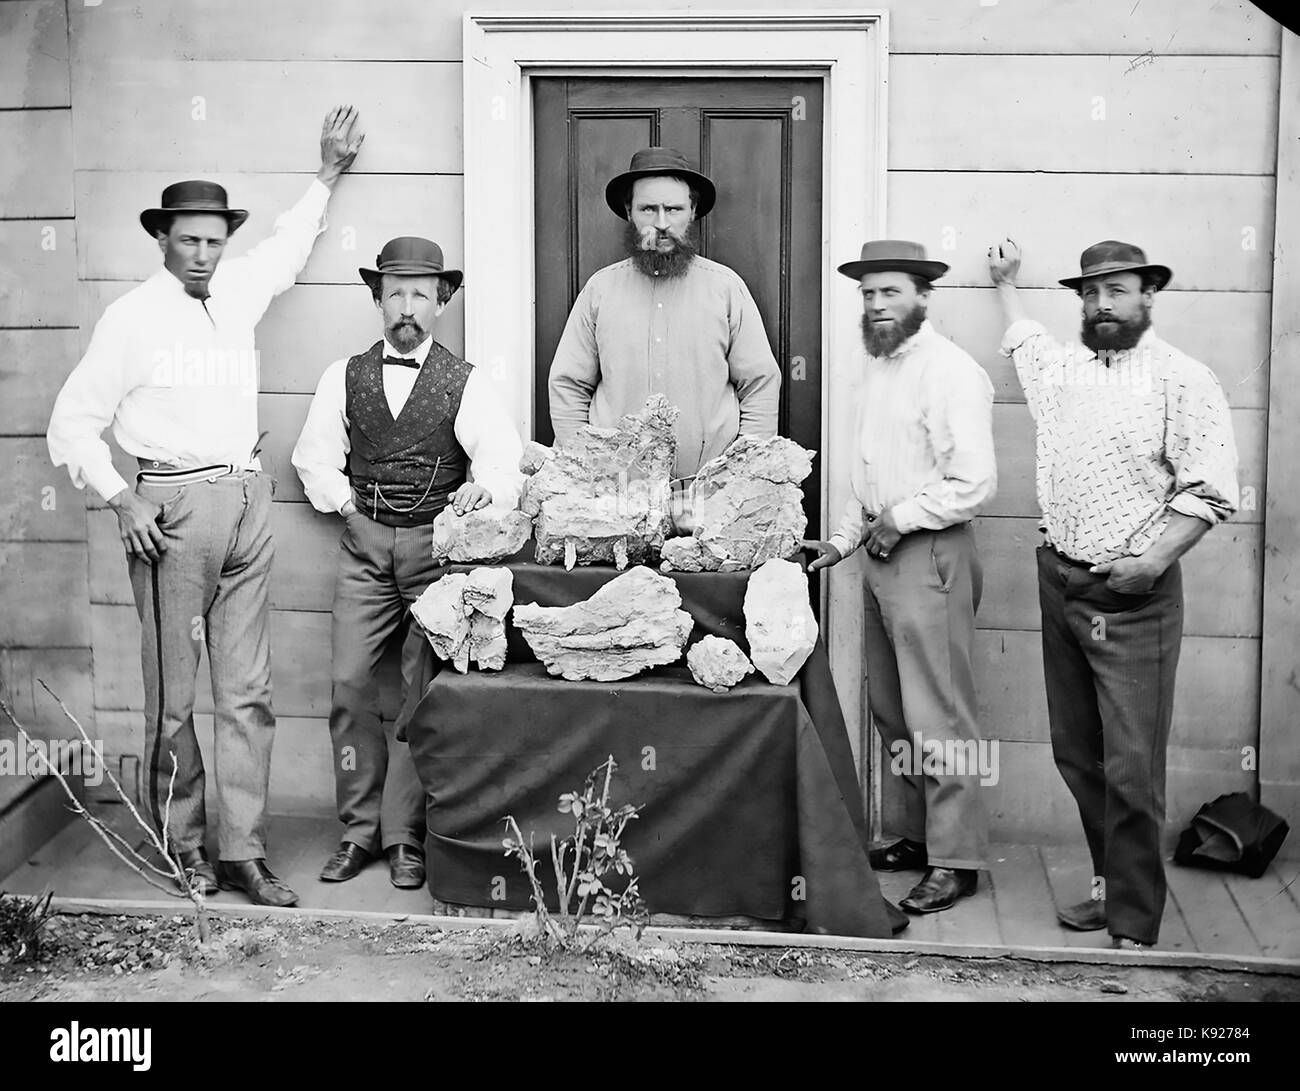 STAR OF HOPE MINE workers at Hill End, New South Wales, Australia about 1875. Photo: State Library of NSW - Stock Image